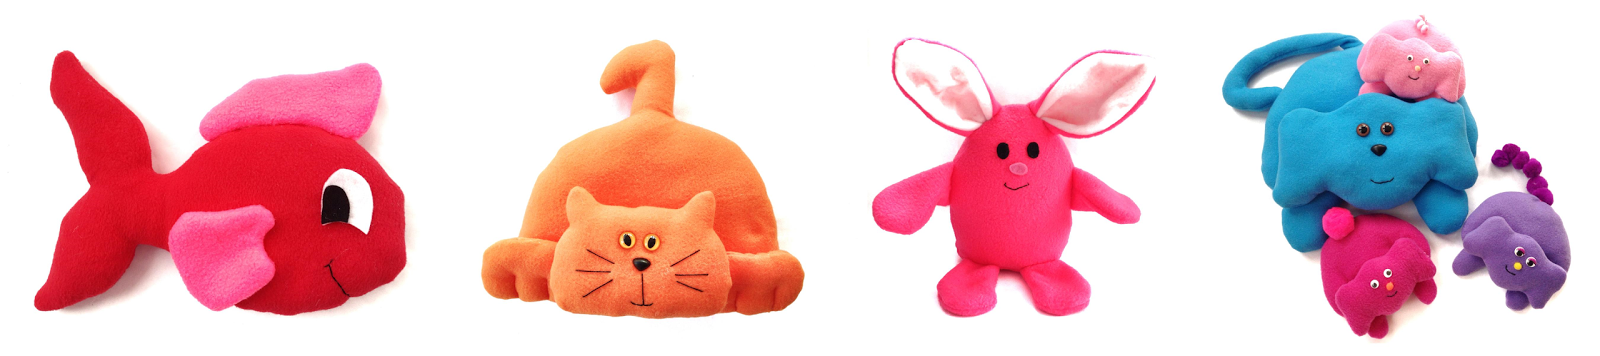 plush animal sewing pattern